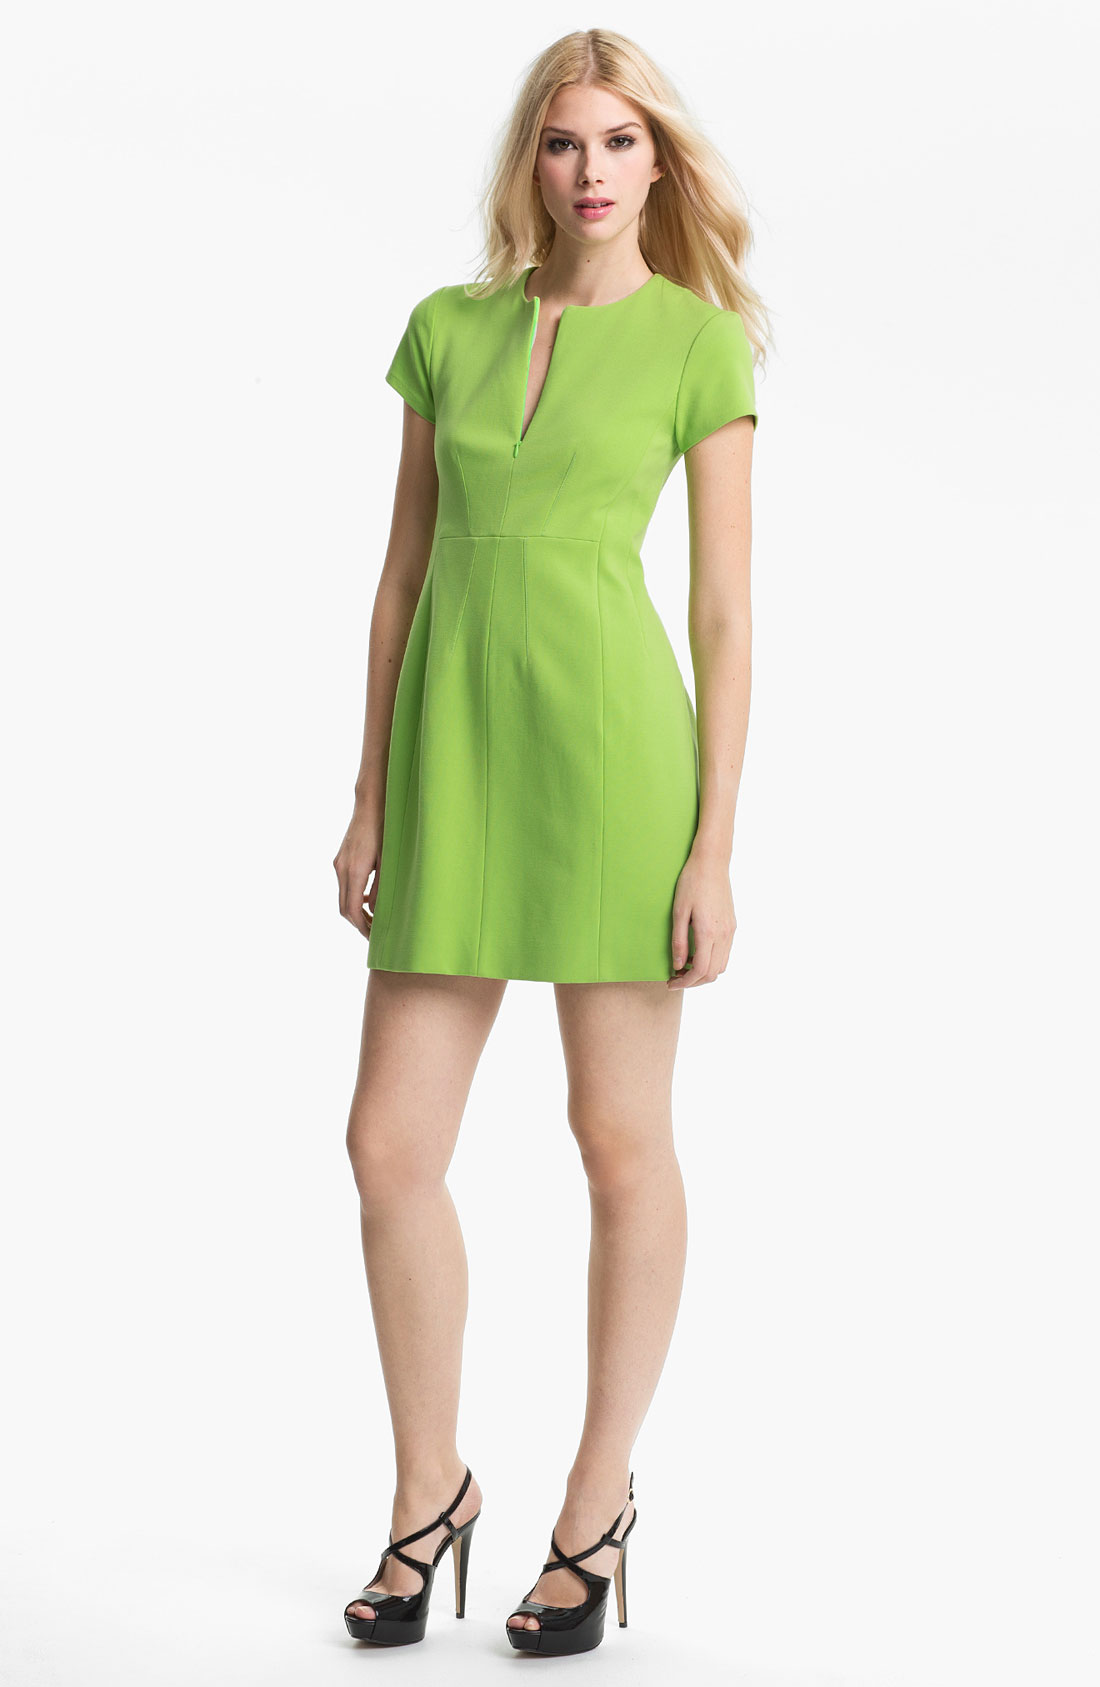 Diane von furstenberg agatha knit sheath dress in green for Diane von furstenberg clothes